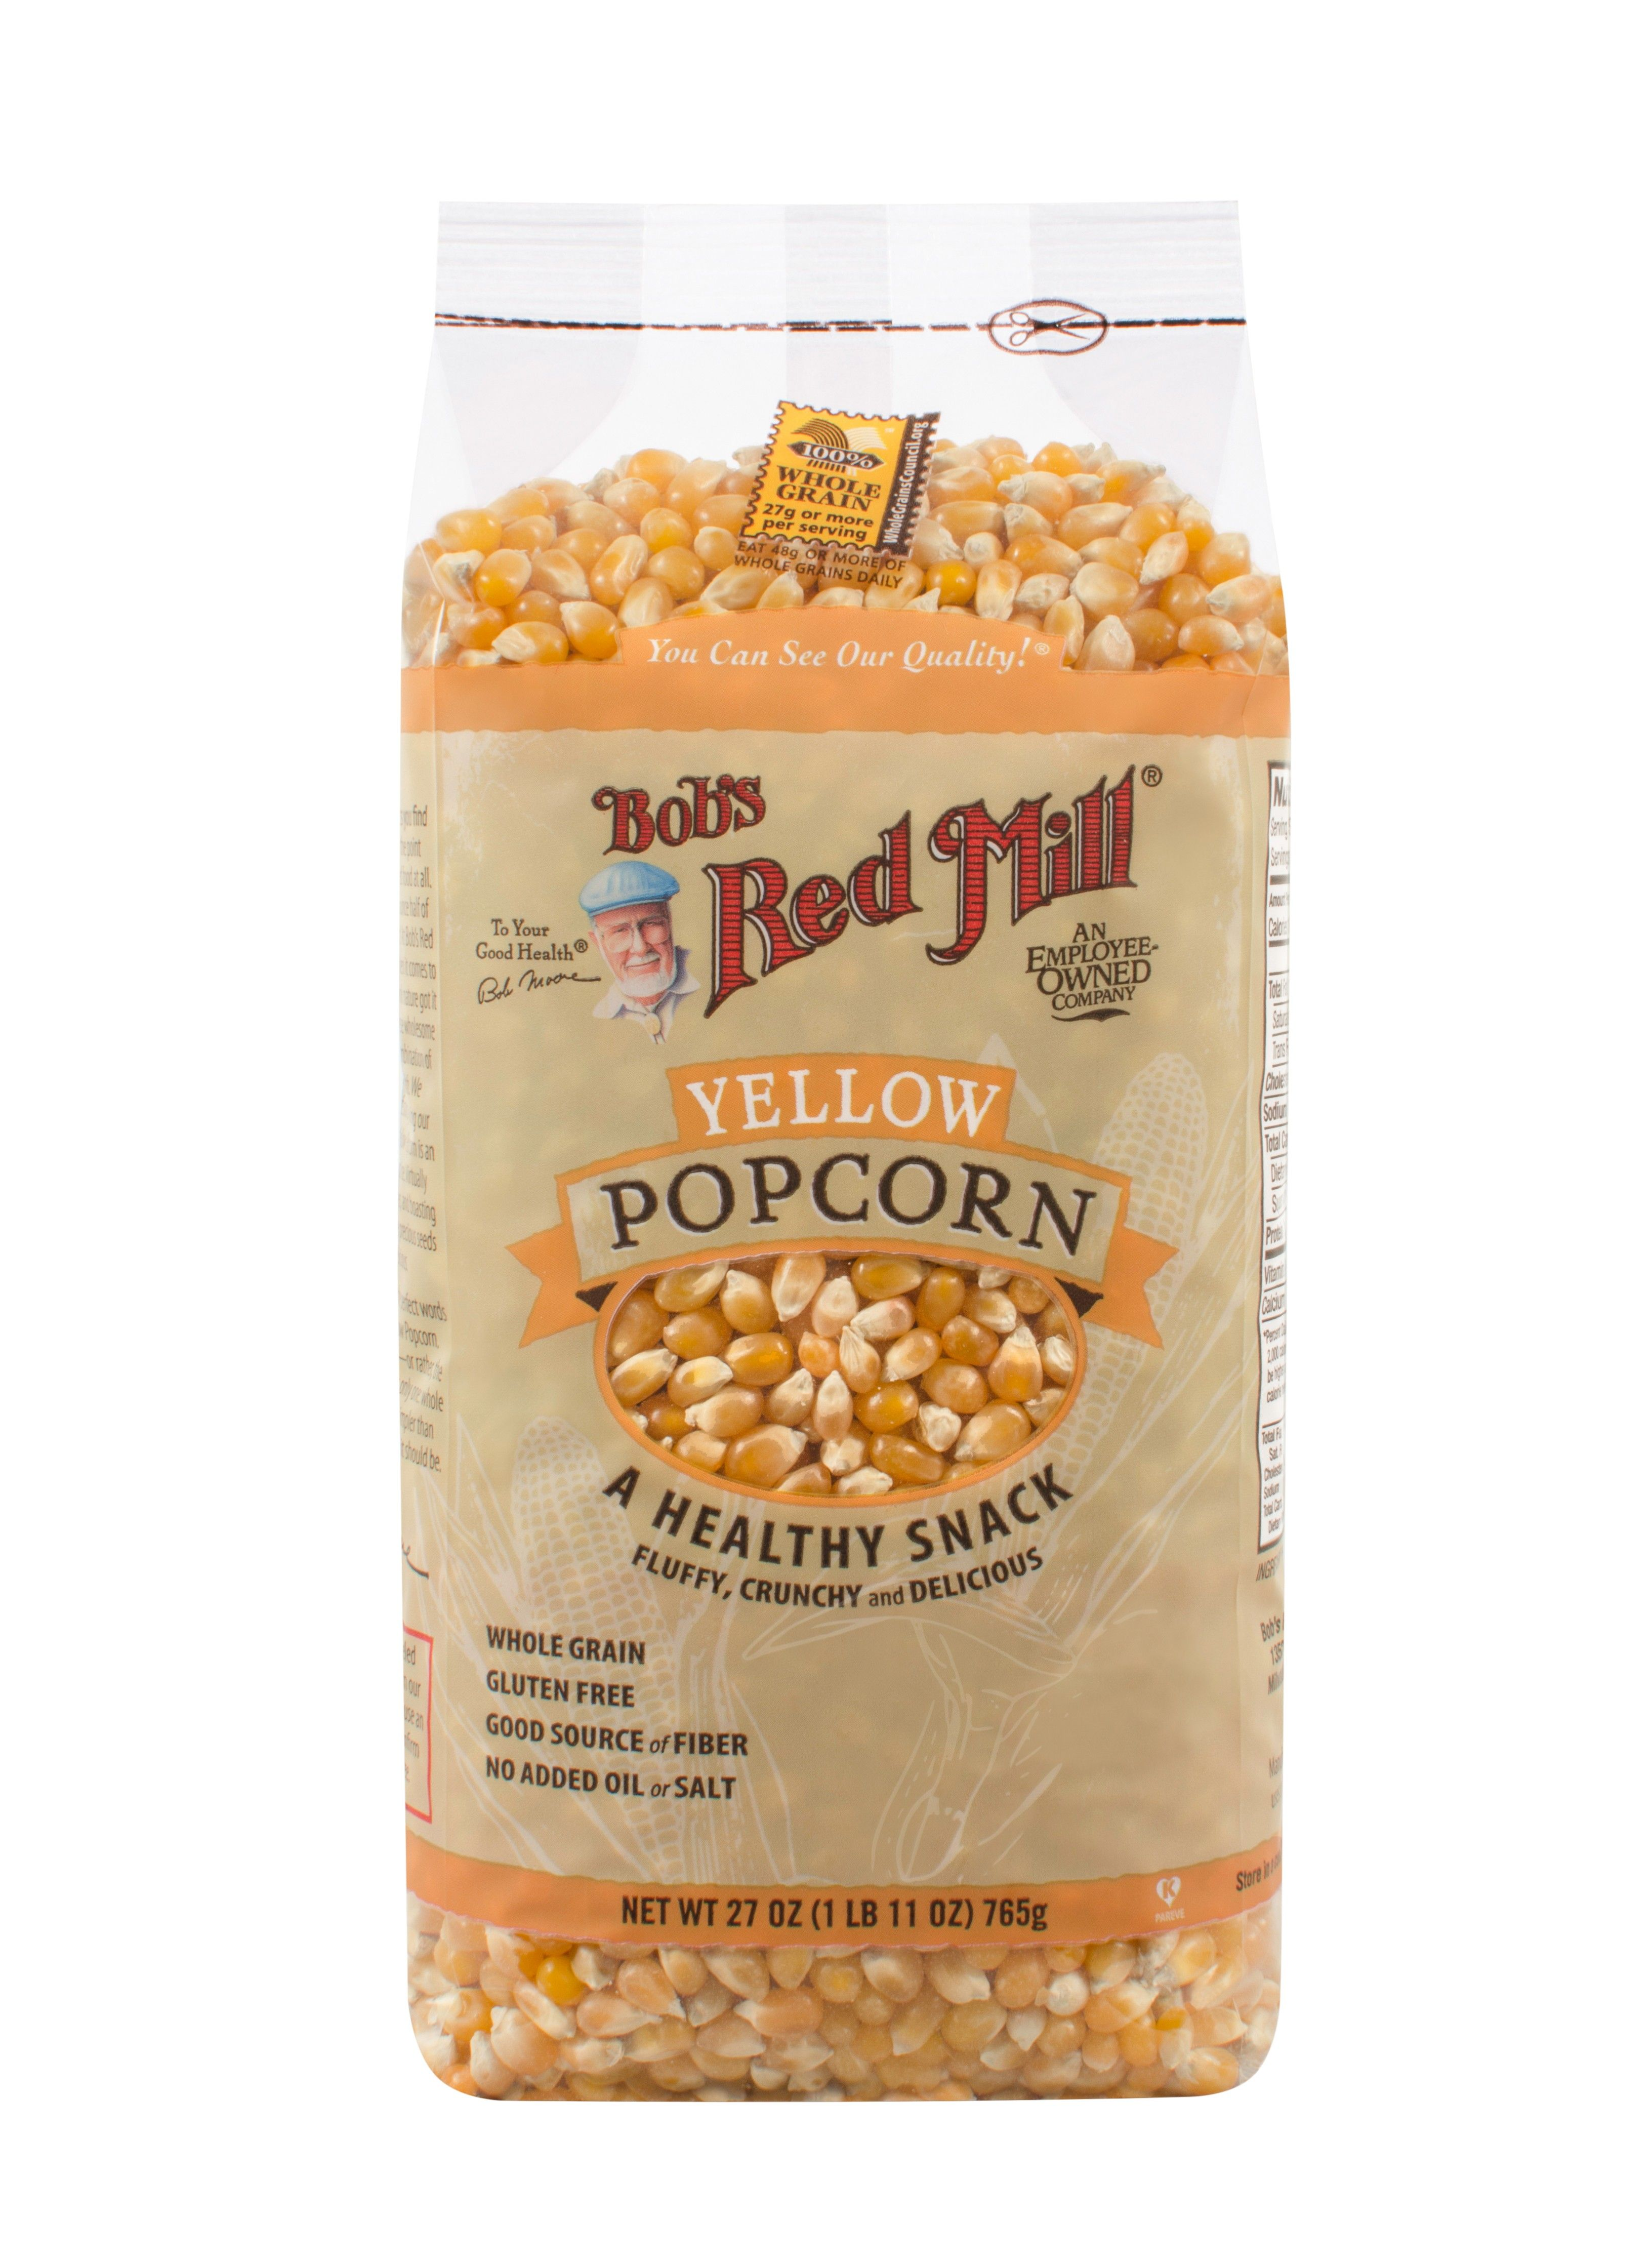 Yellow Popcorn is simply whole grain yellow corn. Pop it on the stovetop, in an air-popper, or in the microwave for an easy, delicious, wholesome high-fiber snack.